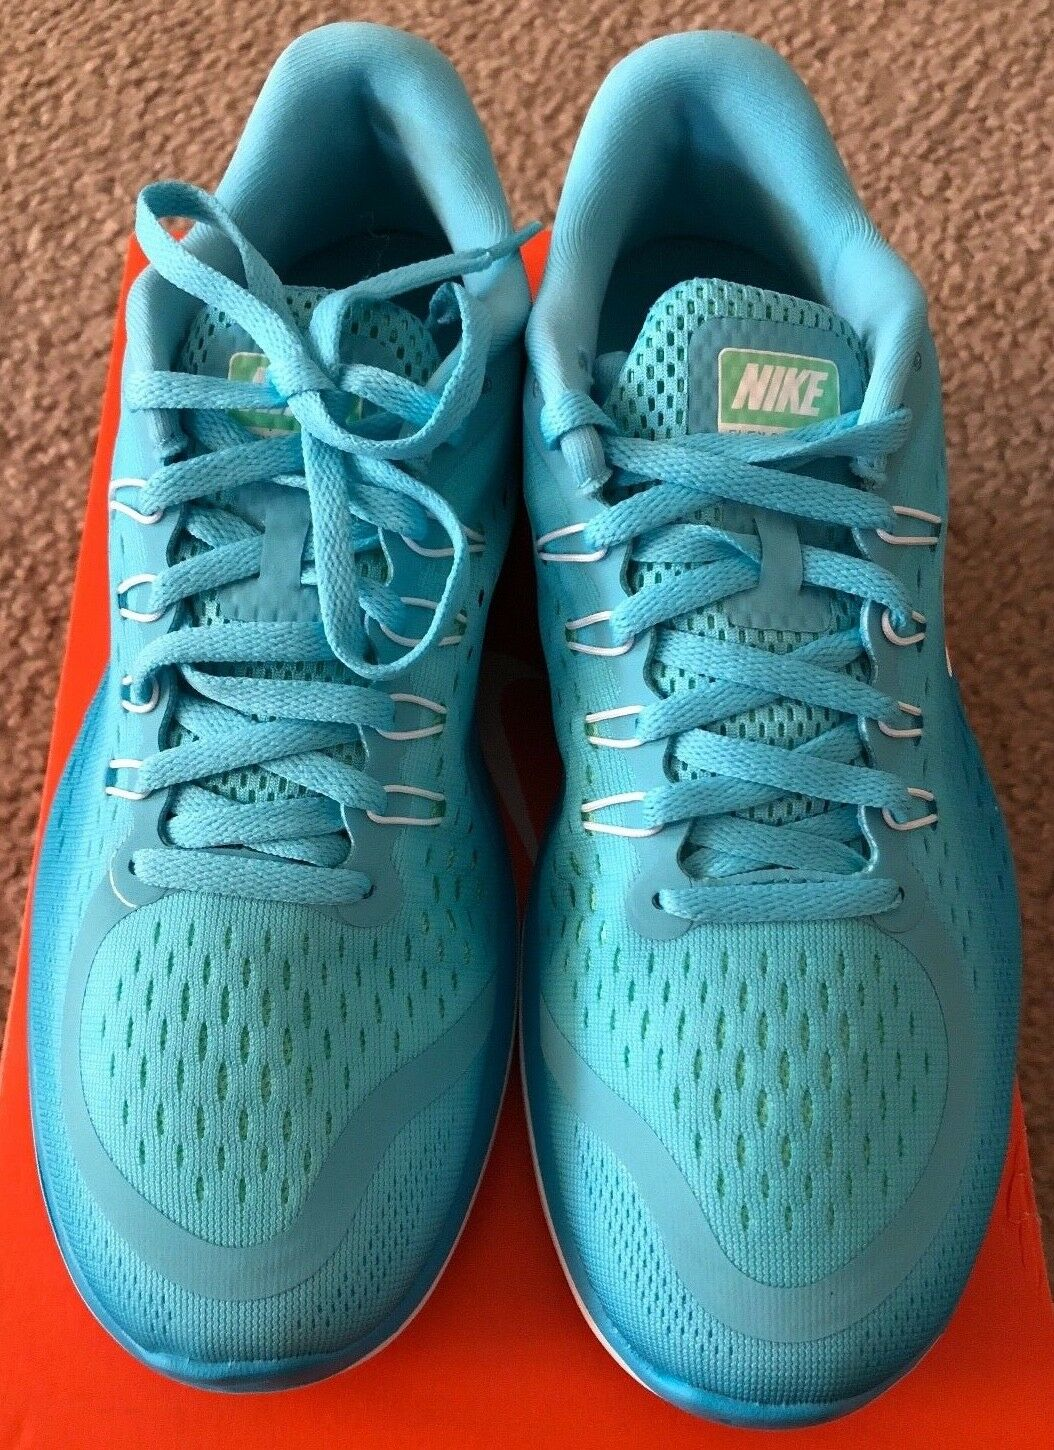 New New New Women's Nike Flex 2017 Running shoes Polarized bluee   Whole US Size 8, 9.5 fc6249